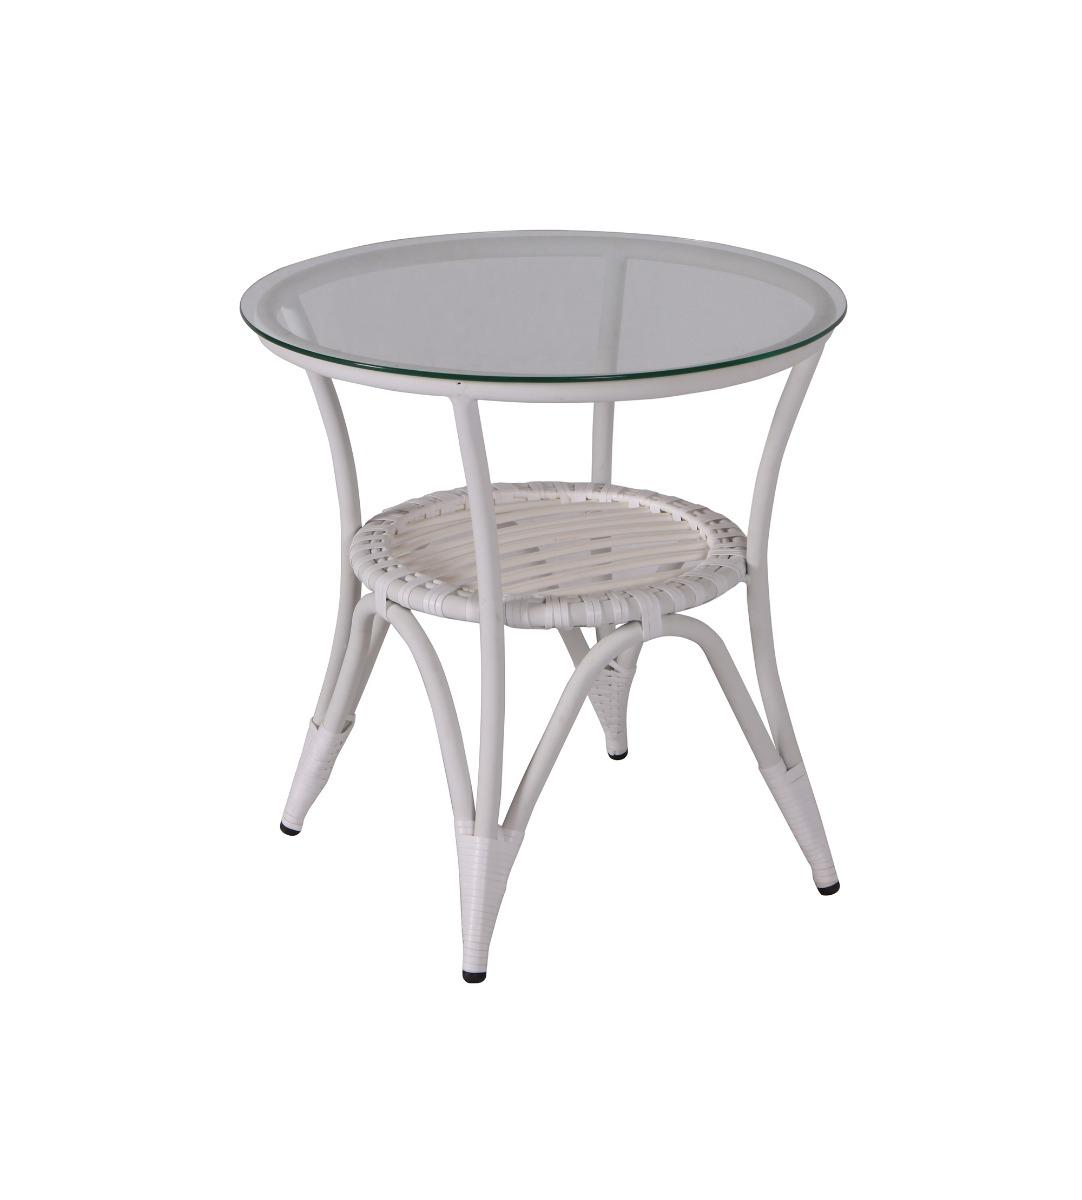 Korting Tahiti lounge round table